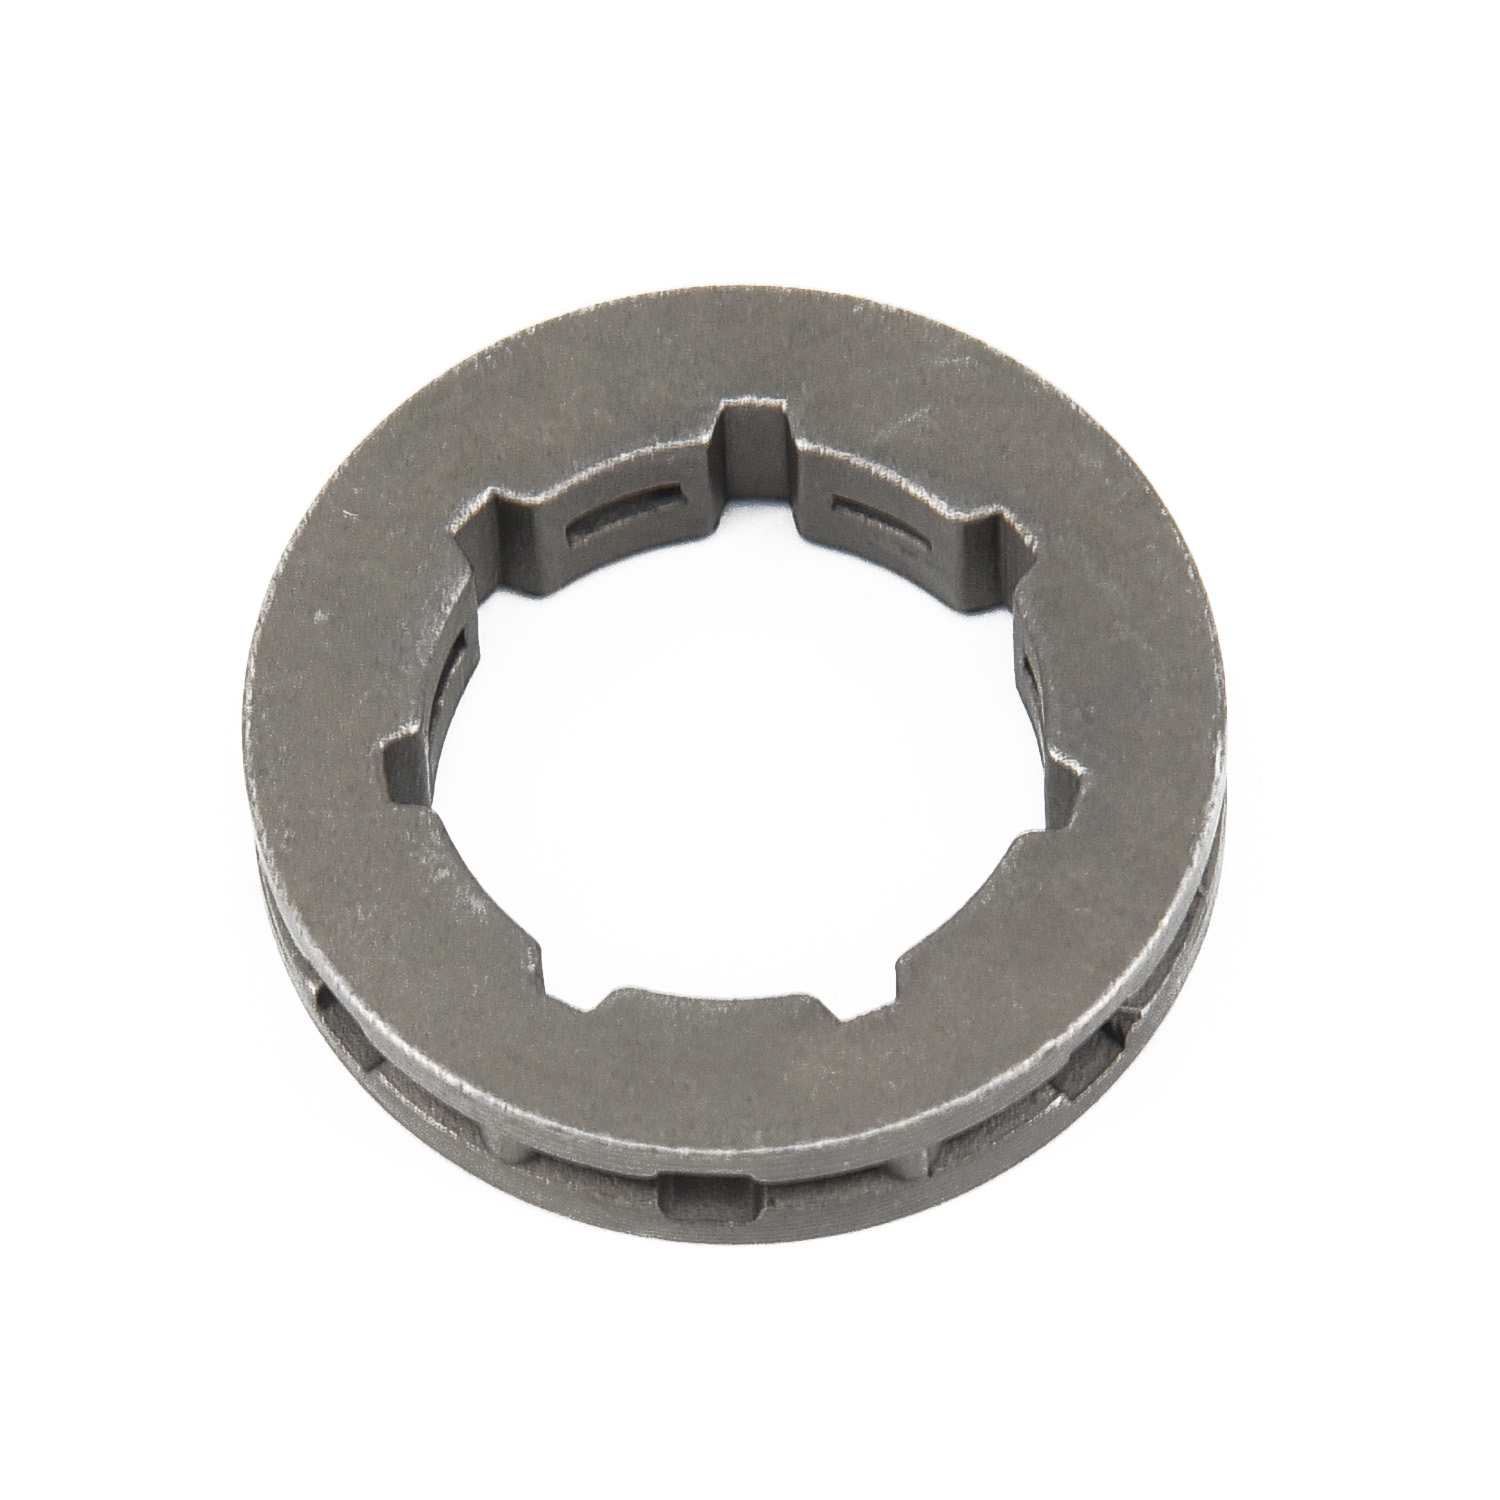 Chainsaws Sprocket Rim <font><b>Parts</b></font> For Stihl MS720 064 066 MS640 <font><b>MS660</b></font> 084 088 MS880 image